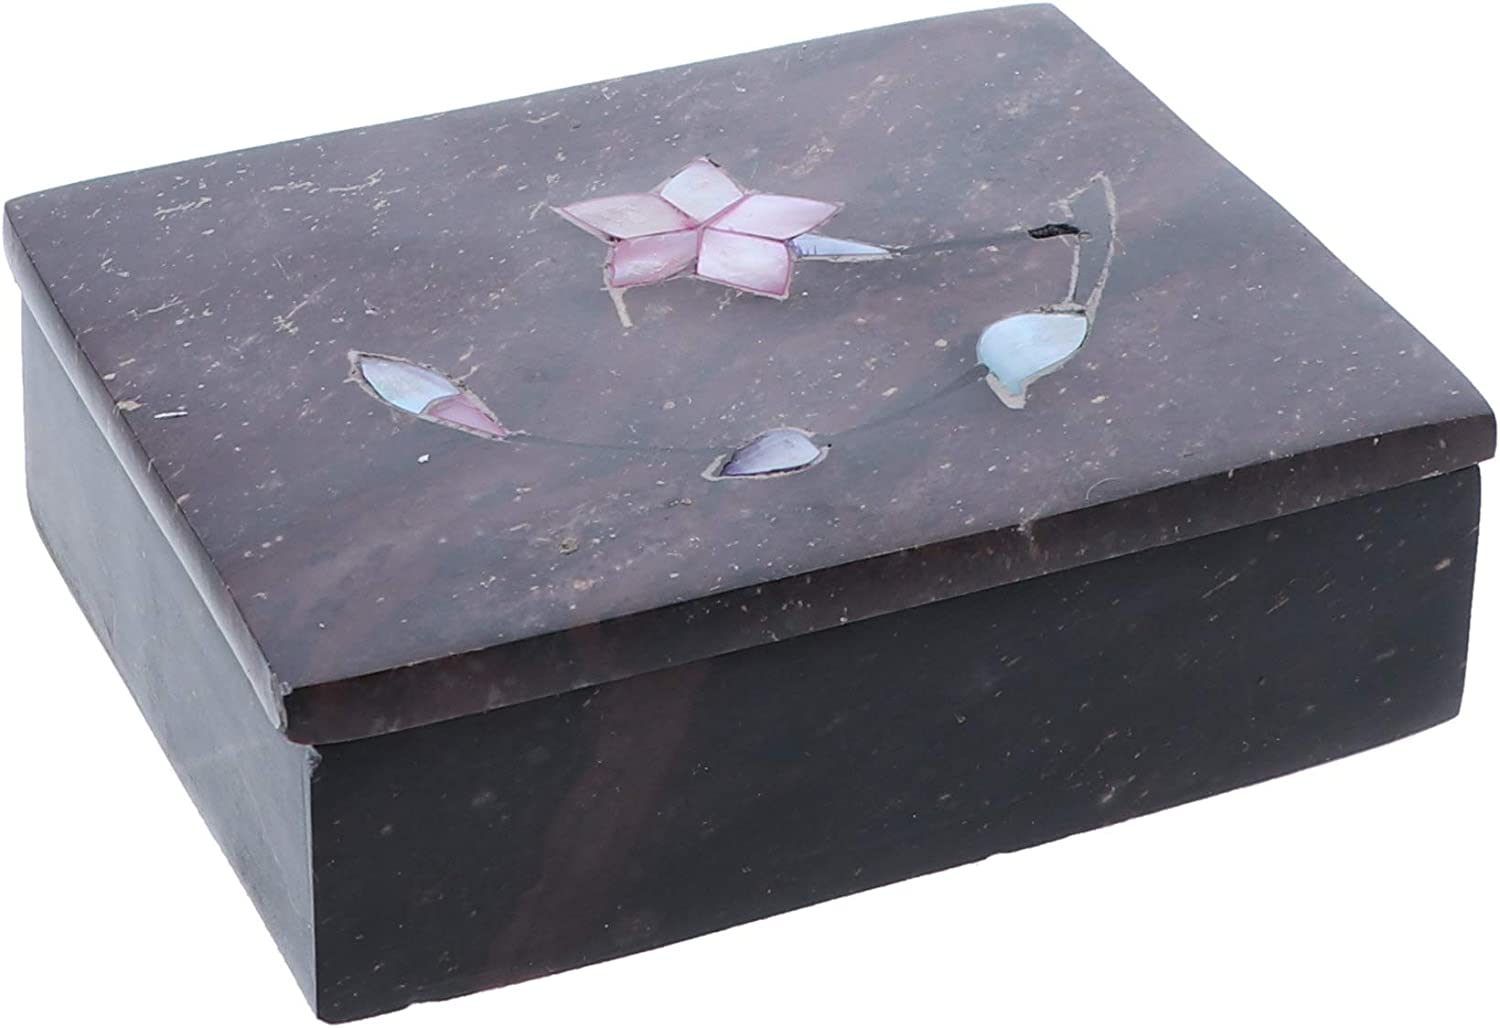 Li'Shay Marble Soapstone Box with Flowers Large Rectangle